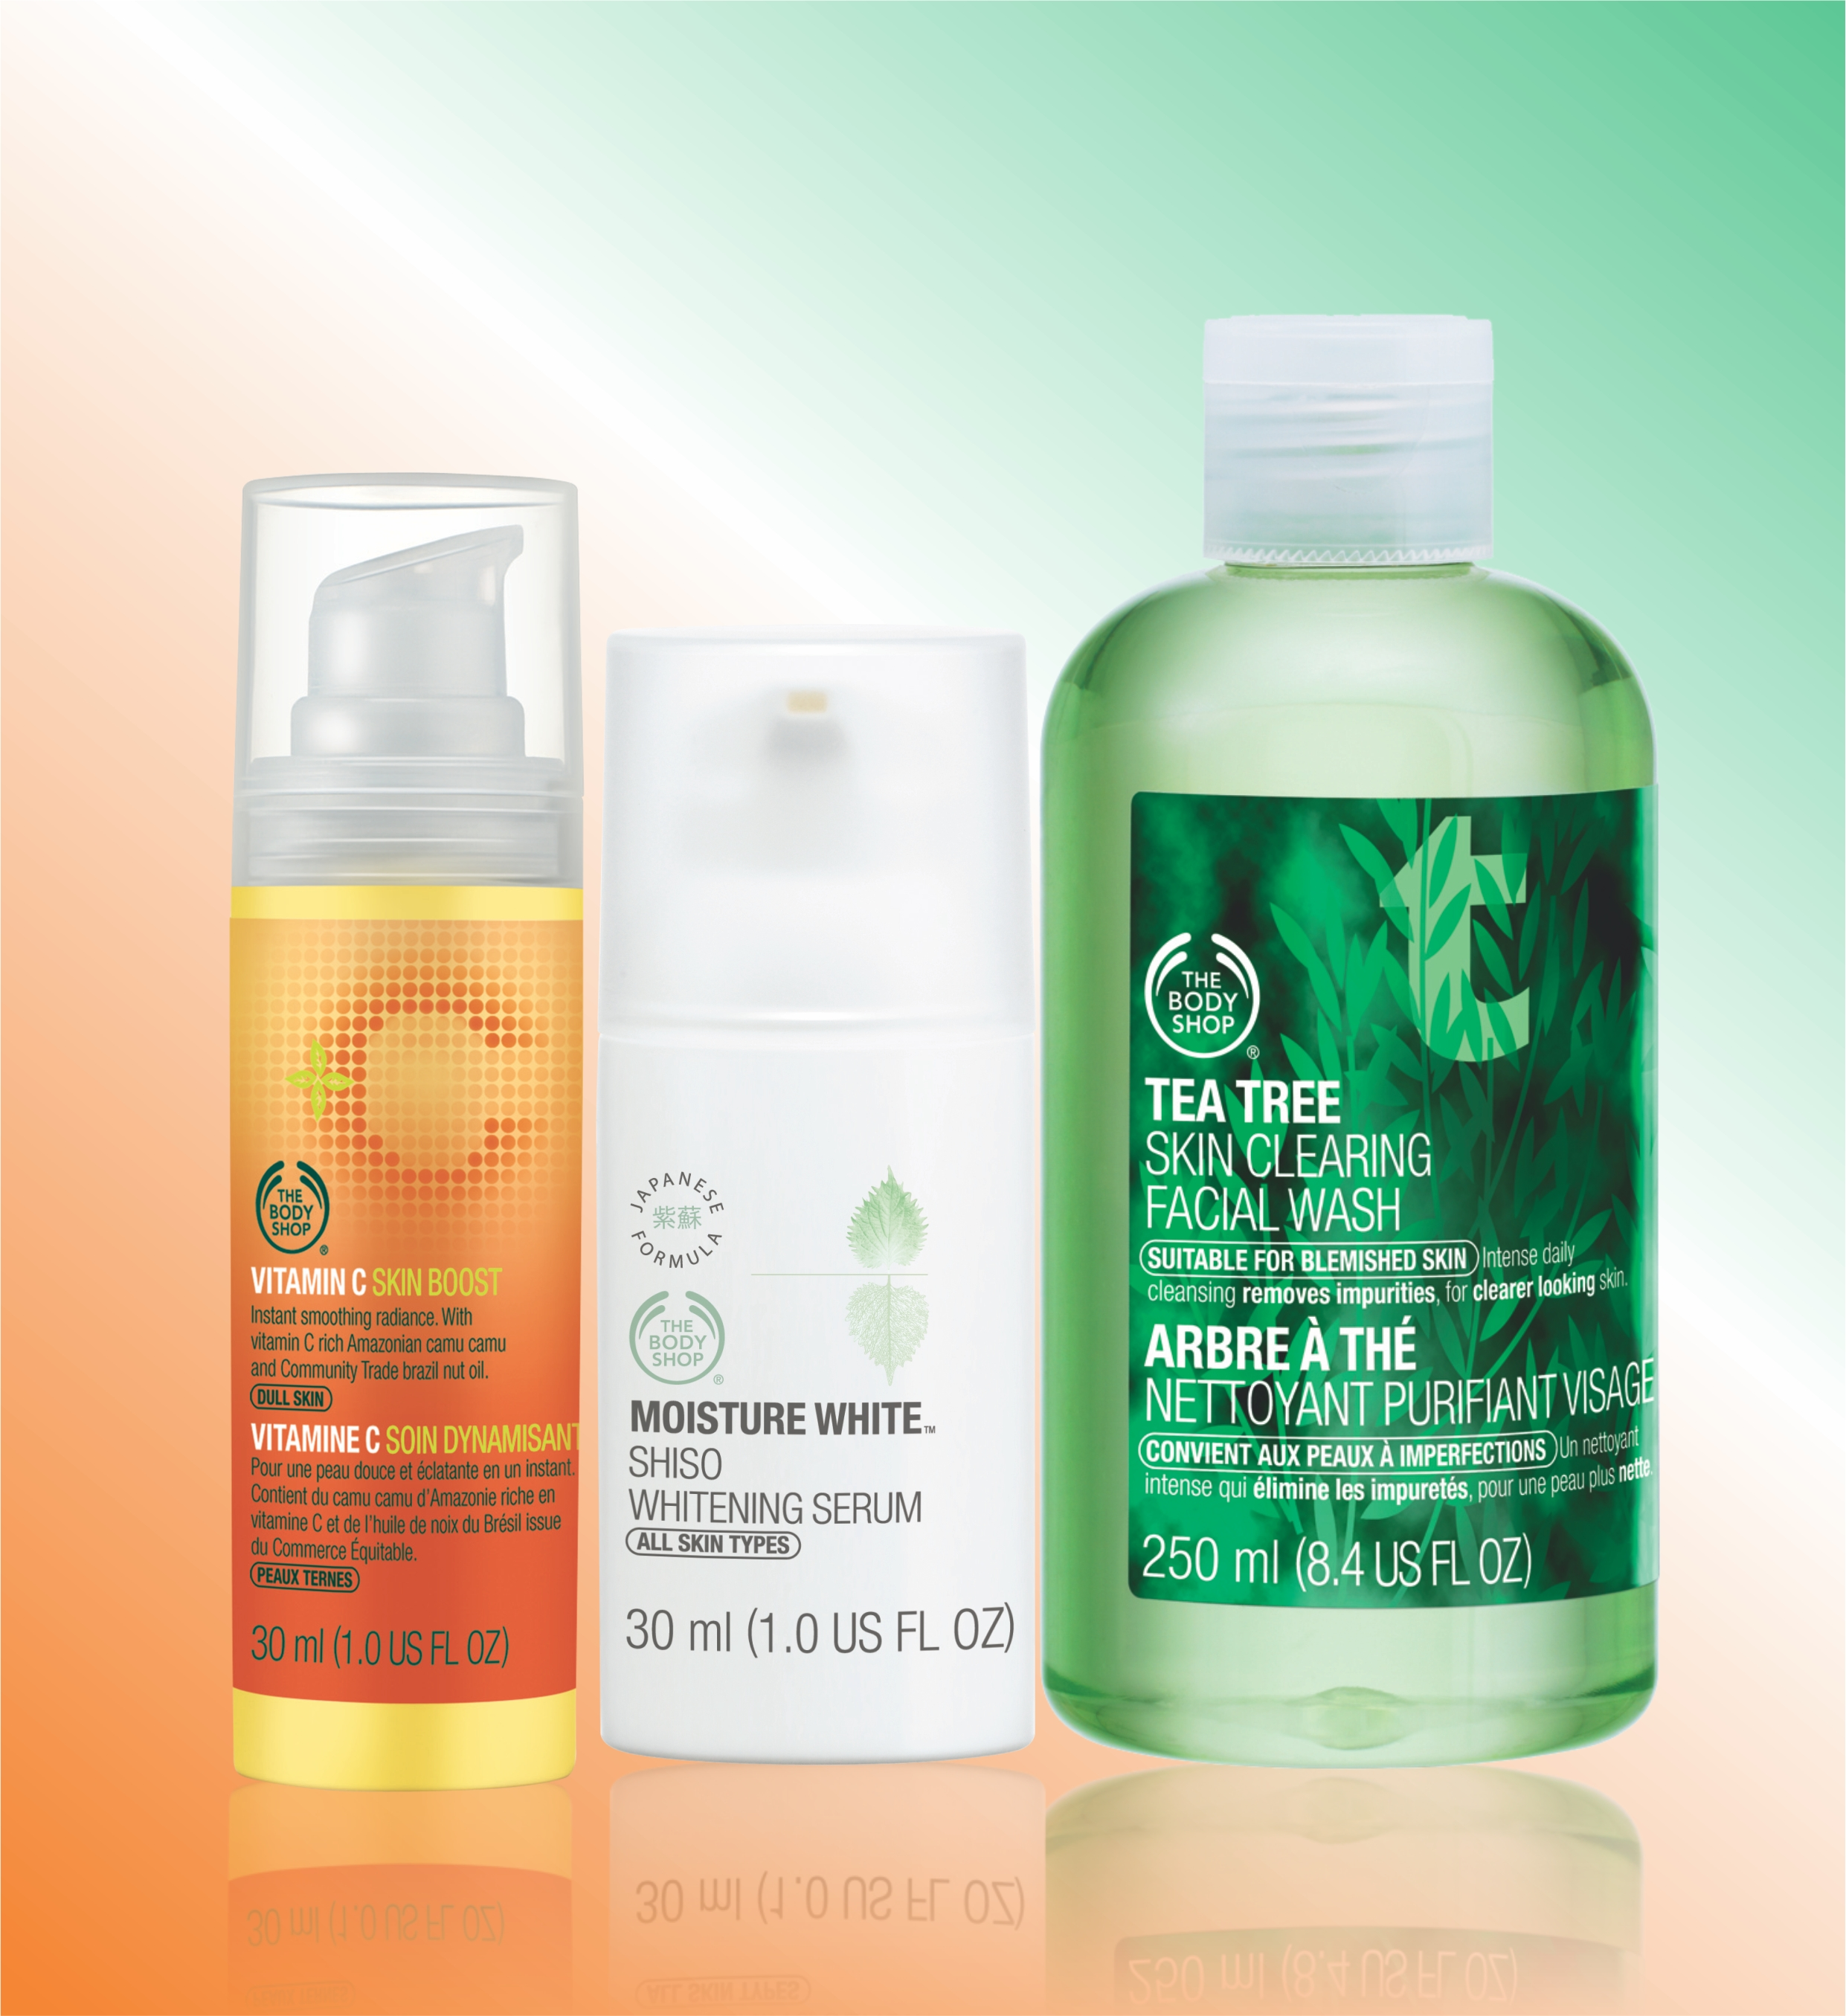 Celebrate Republic Day With The Body Shop!